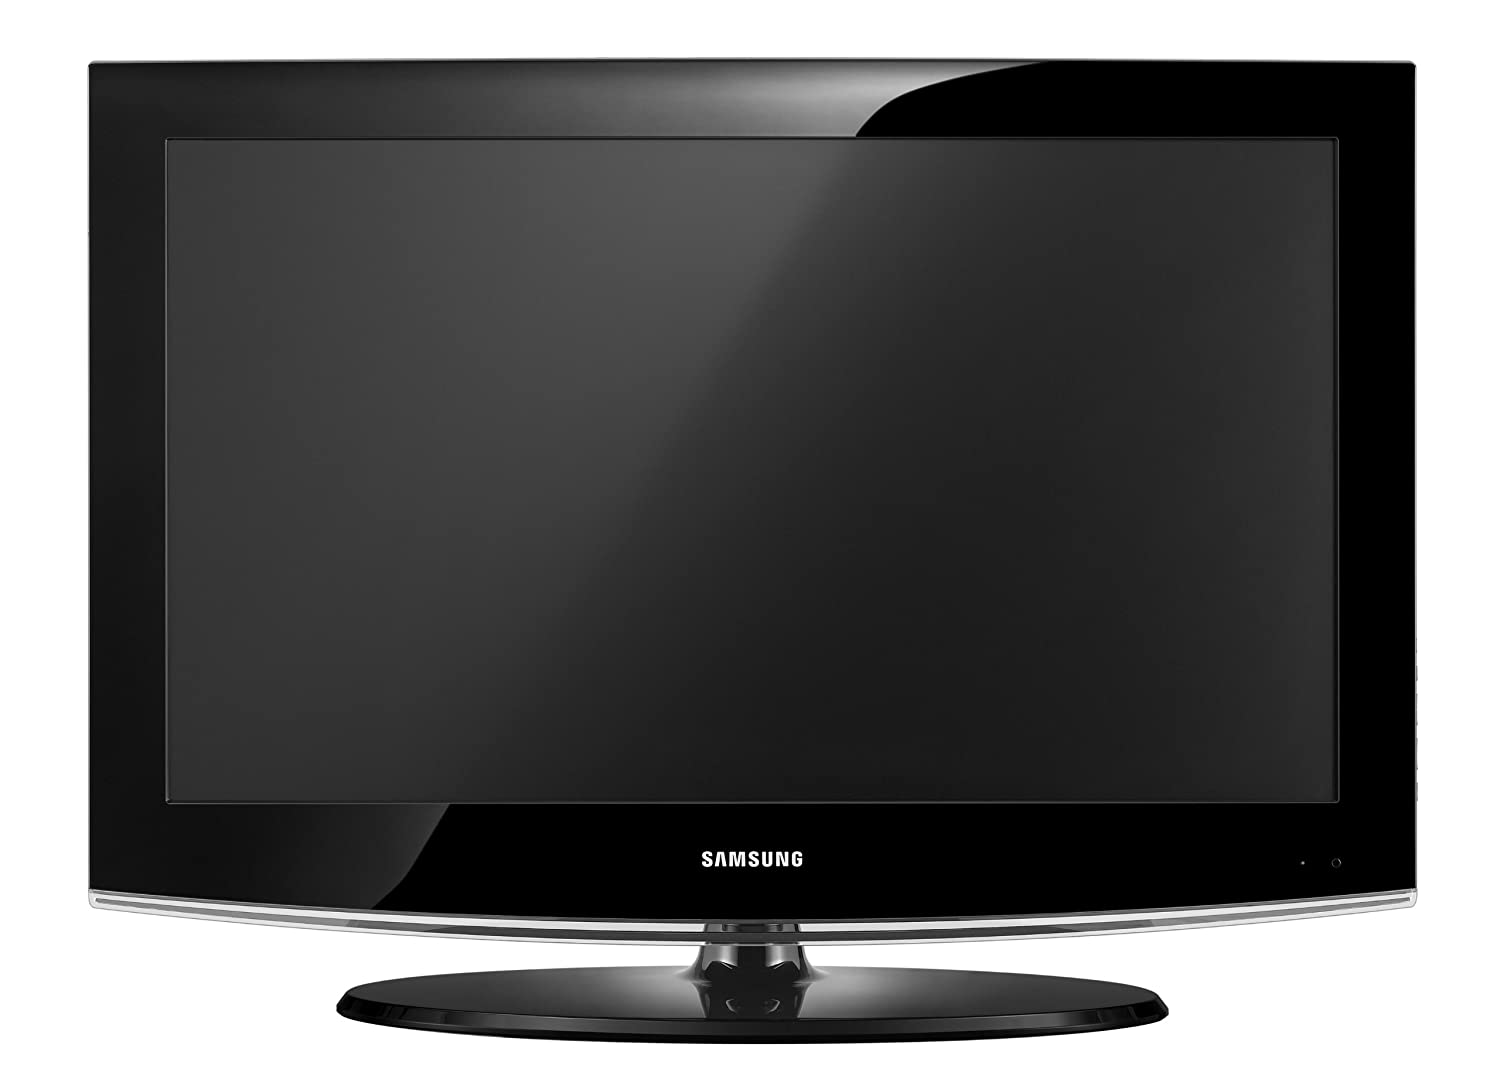 Samsung Smart Tv 32 Inch The Gallery For Gt Samsung Led Tv Price 32 Inch